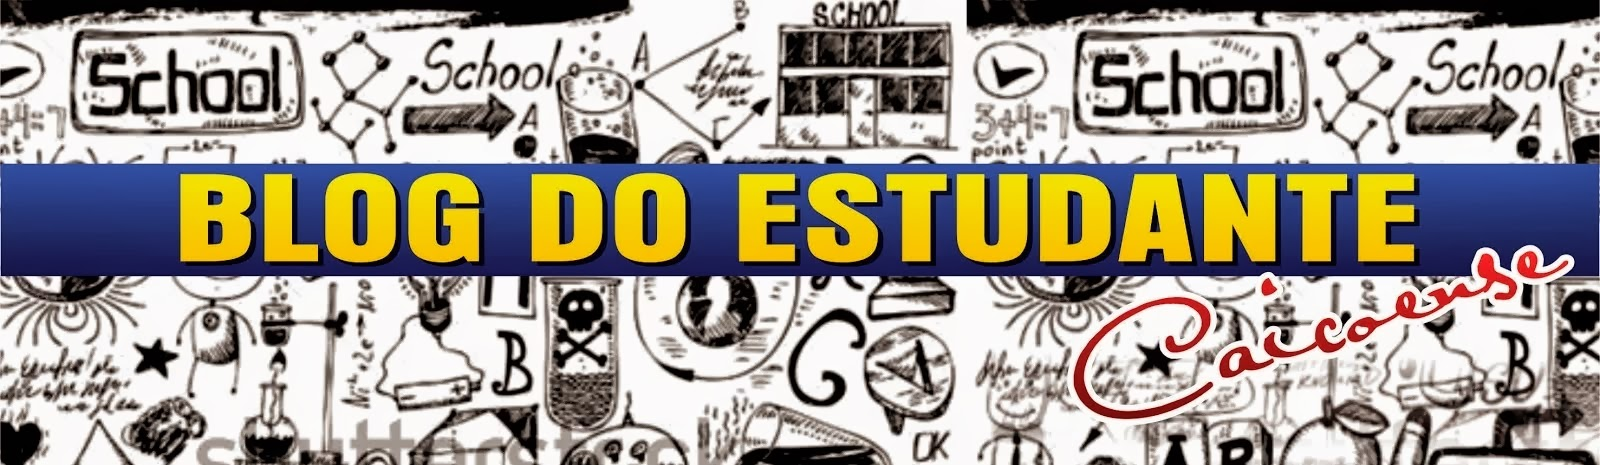 Blog do Estudante Caicoense